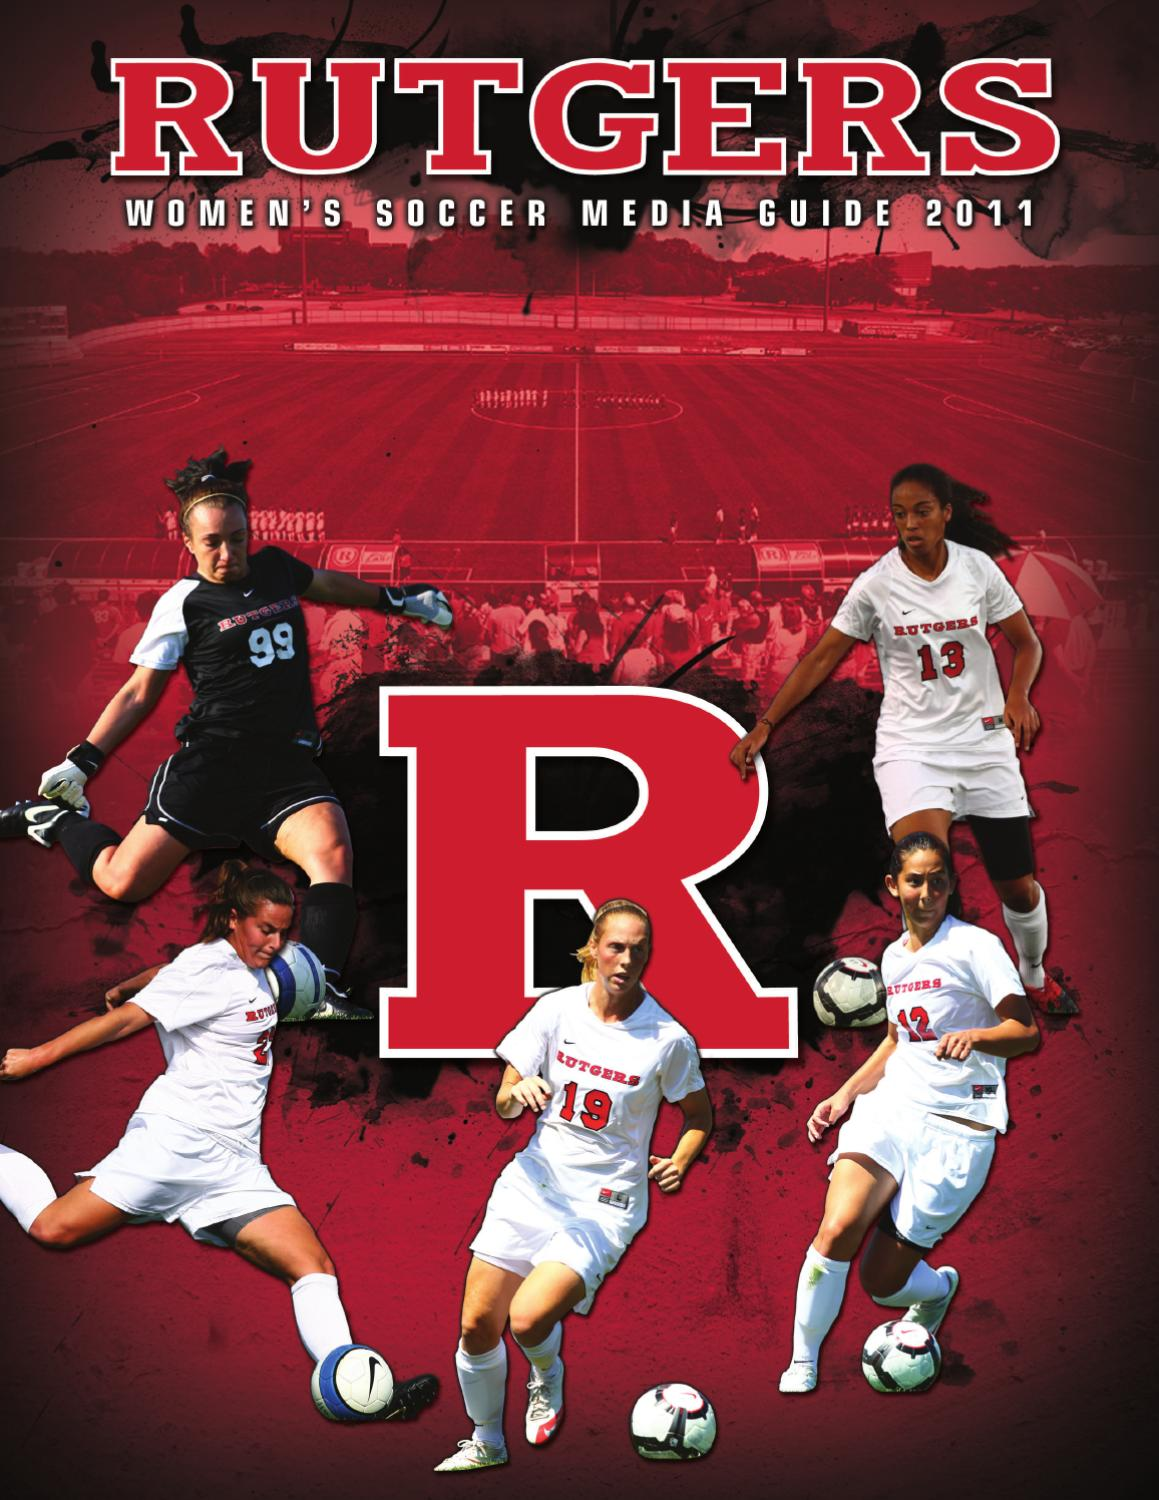 ce220672a 2011 Rutgers Women s Soccer Media Guide by Rutgers Athletics - issuu